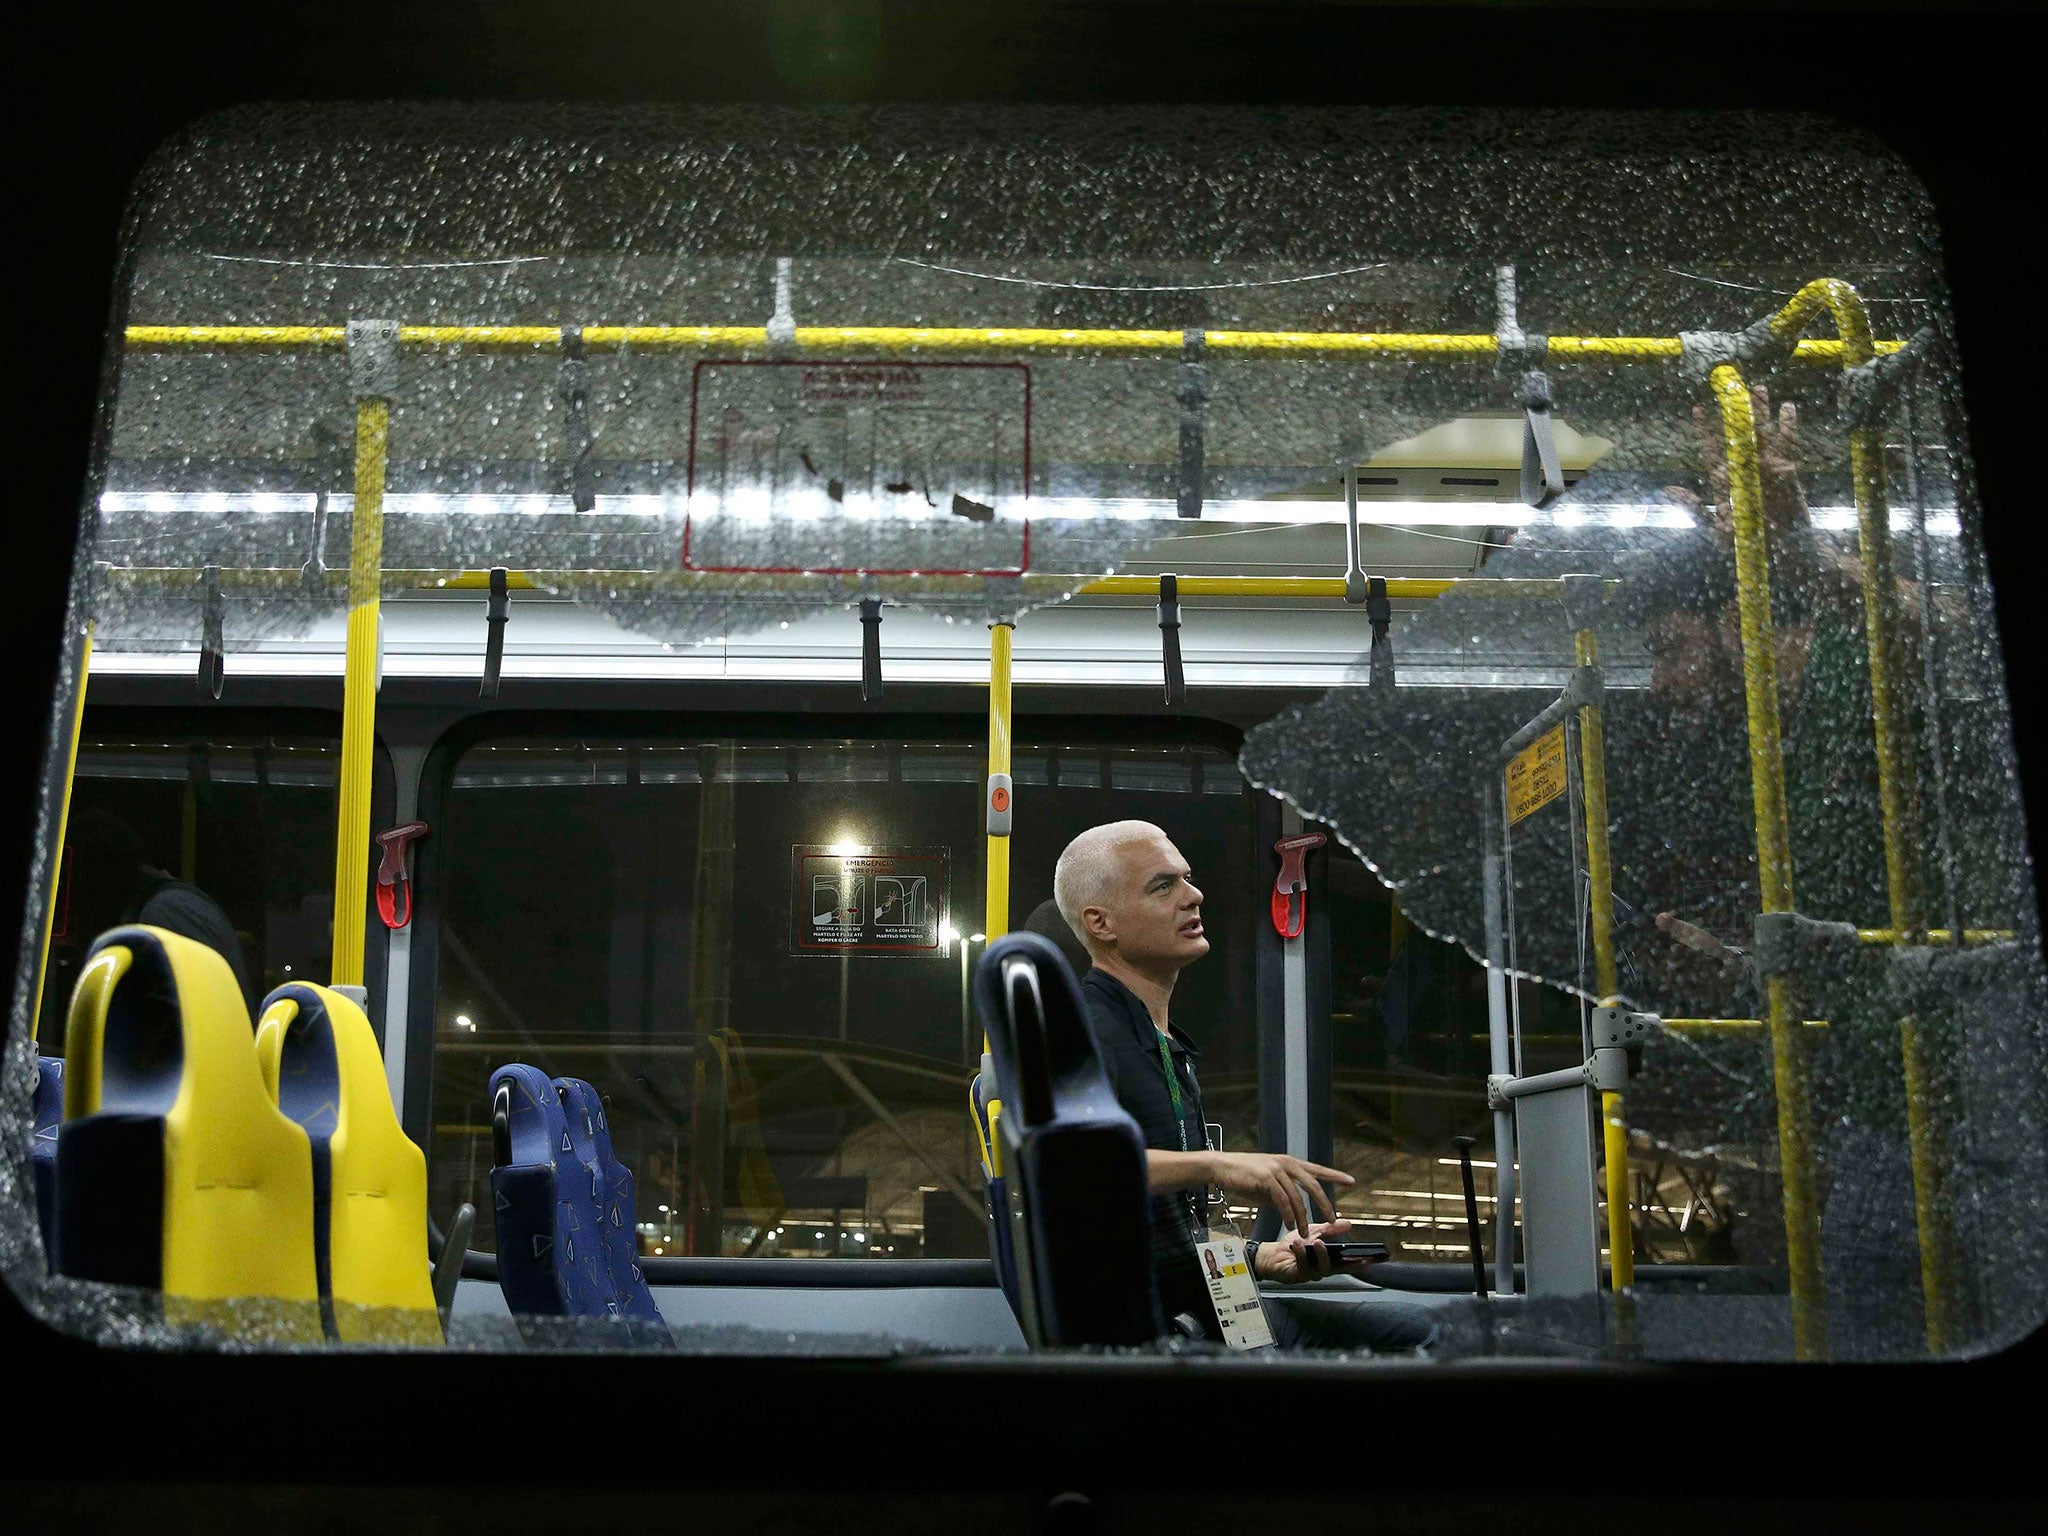 Rio 2016: Bus carrying journalists attacked by suspected gunfire while travelling between Olympic venues